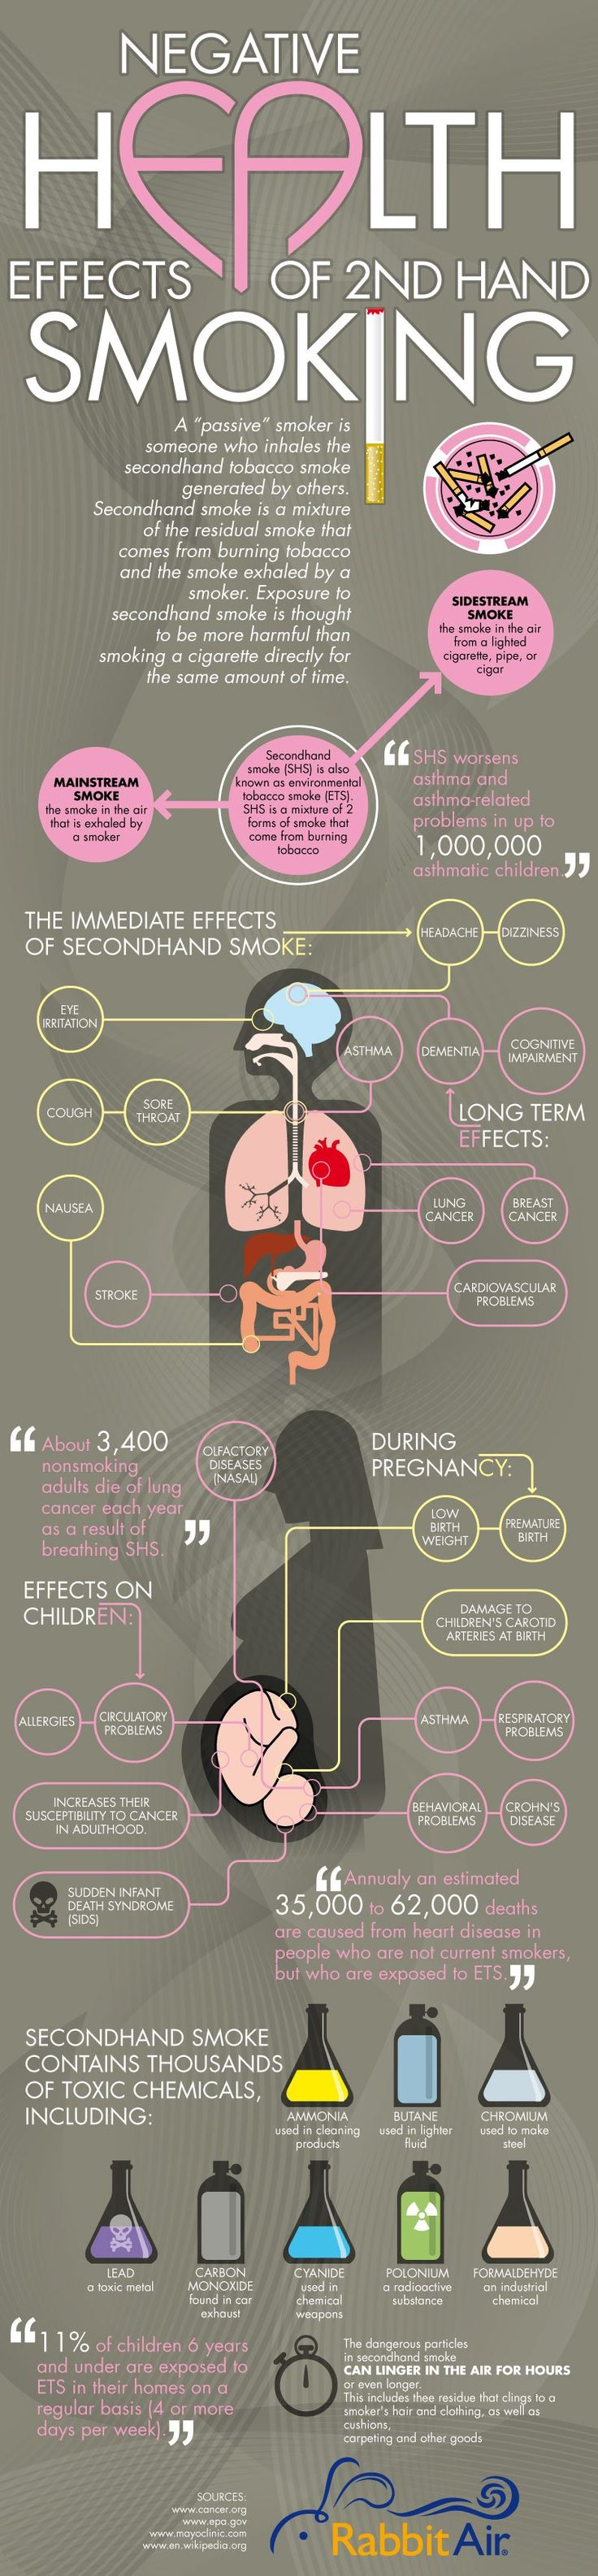 Secondhand Smoke Infographic ...... Also, Go to RMR 4 awesome news!! ... RMR4 INTERNATIONAL.INFO ... Register for our Product Line Showcase Webinar at: www.rmr4international.info/500_tasty_diabetic_recipes.htm ... Don't miss it!